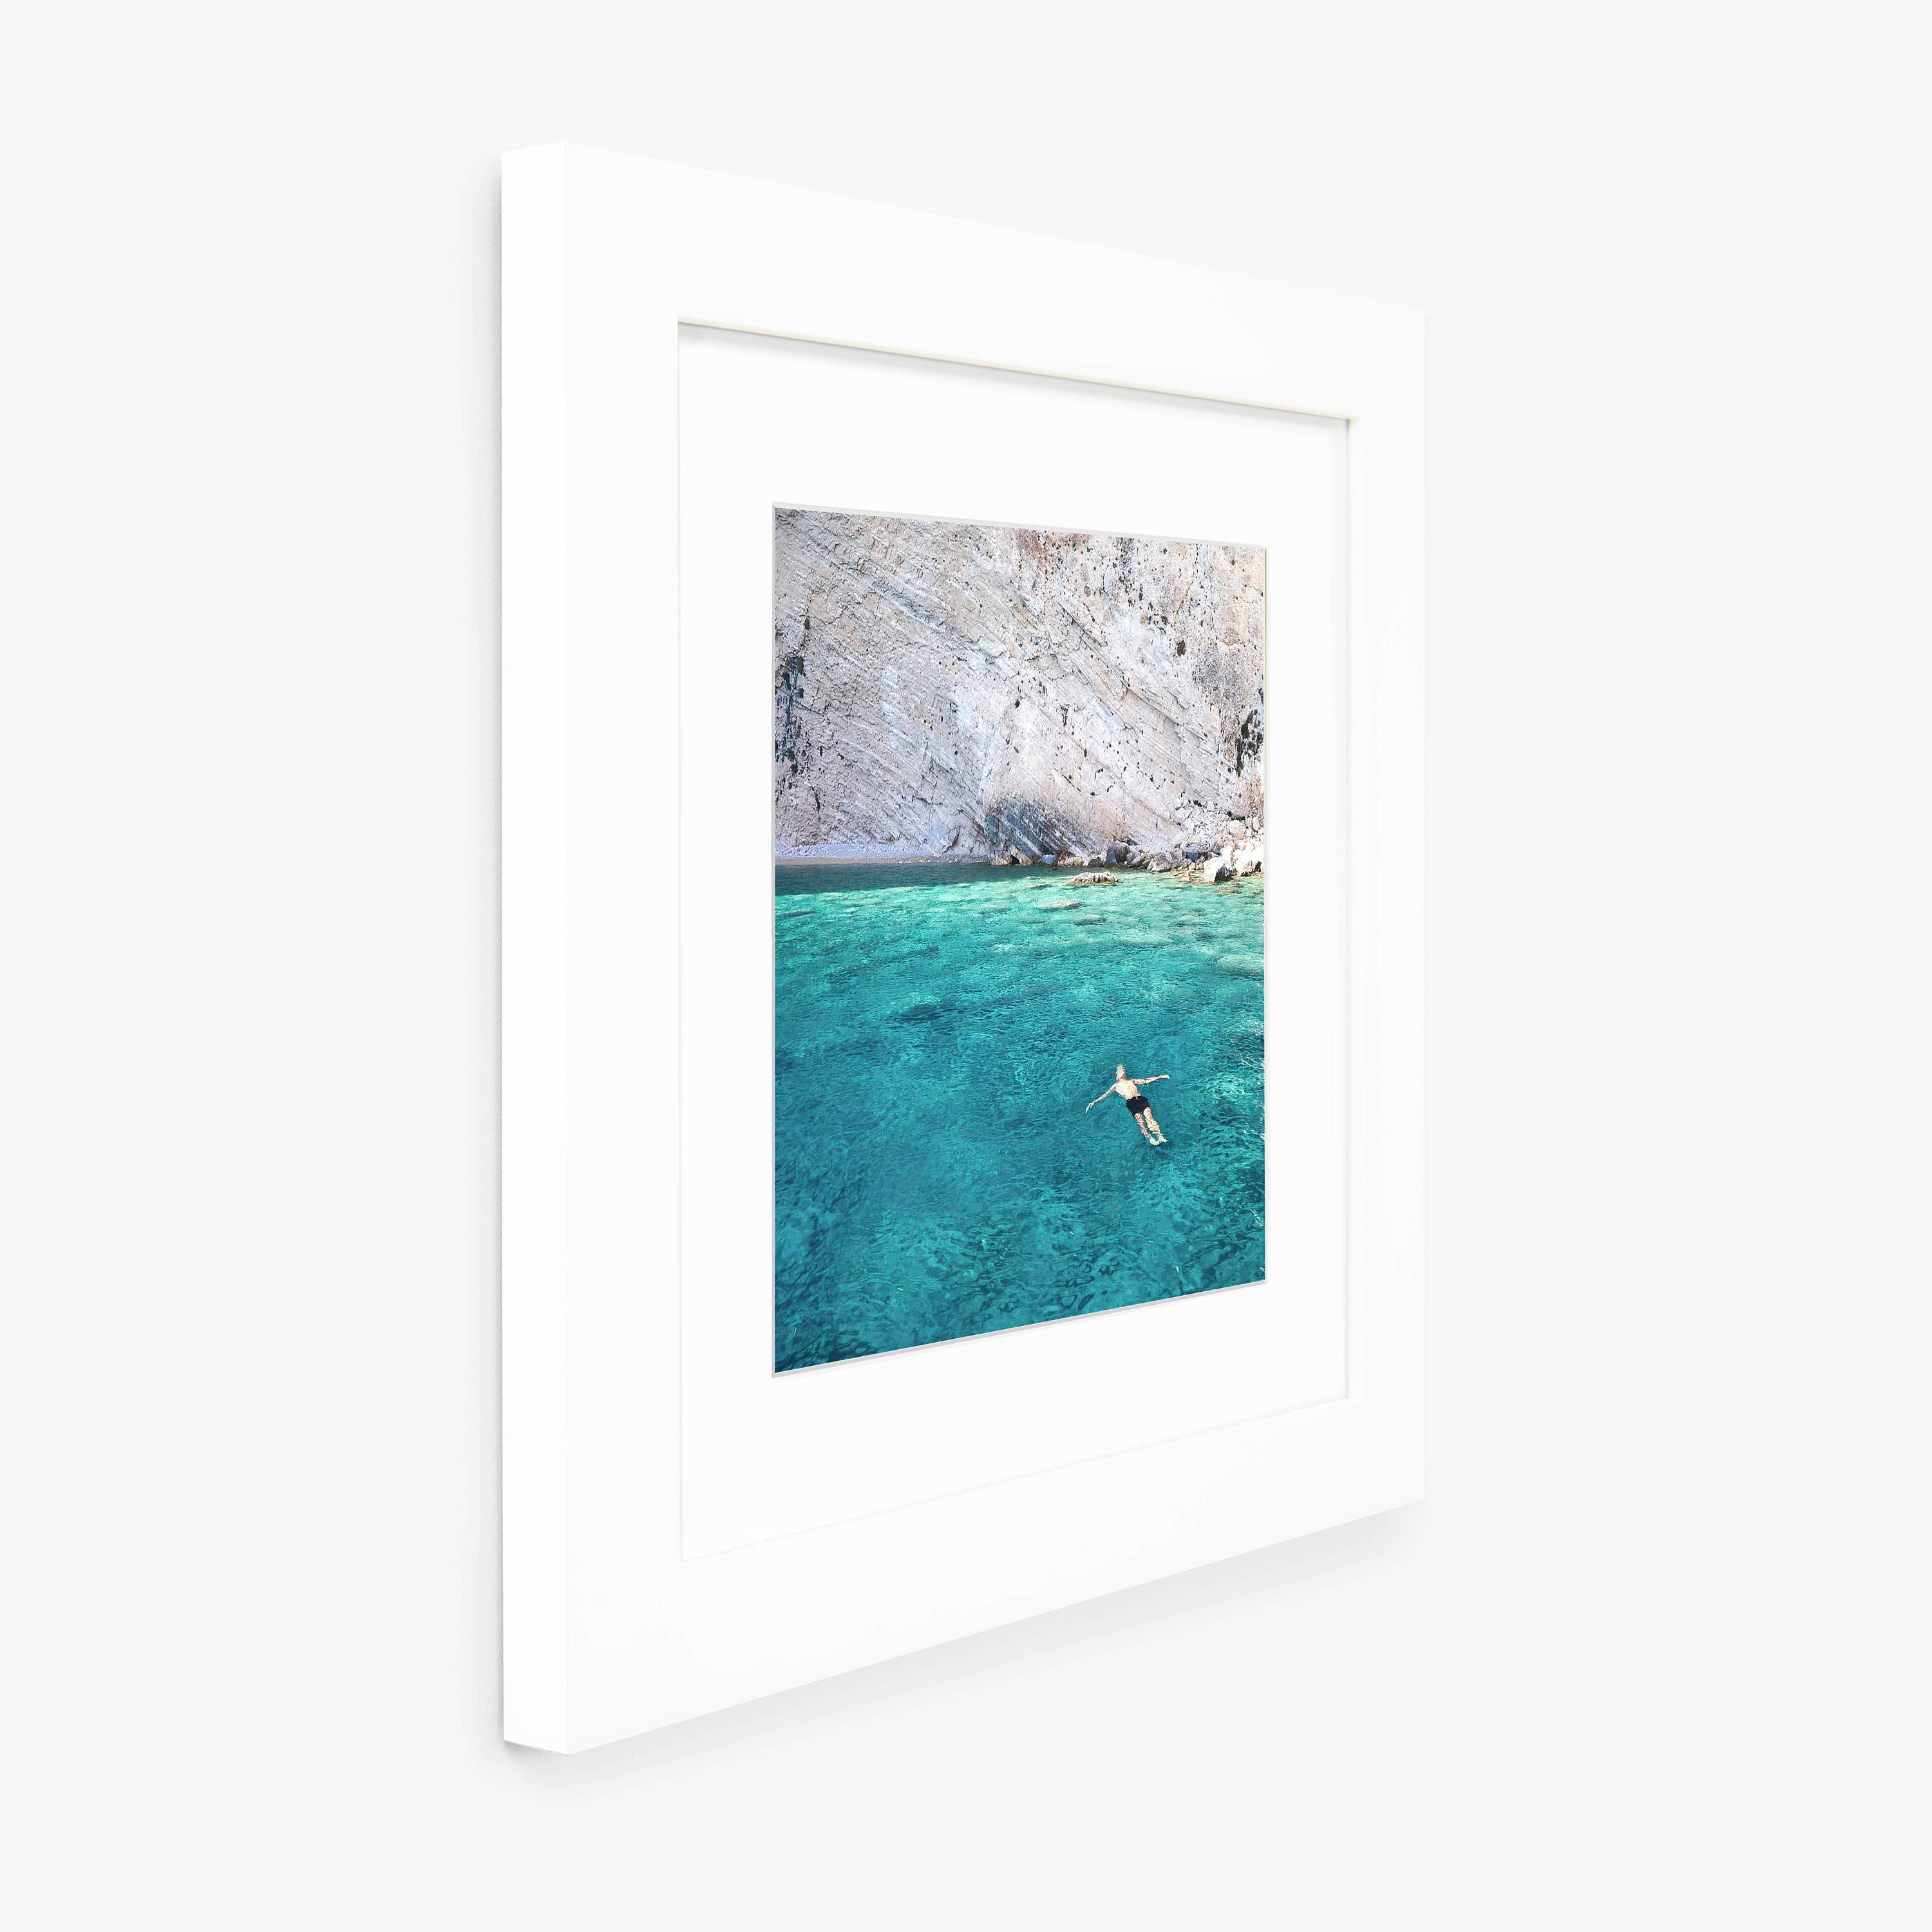 17x17 frame + your photo. Price incls print + frame, free shipping ...